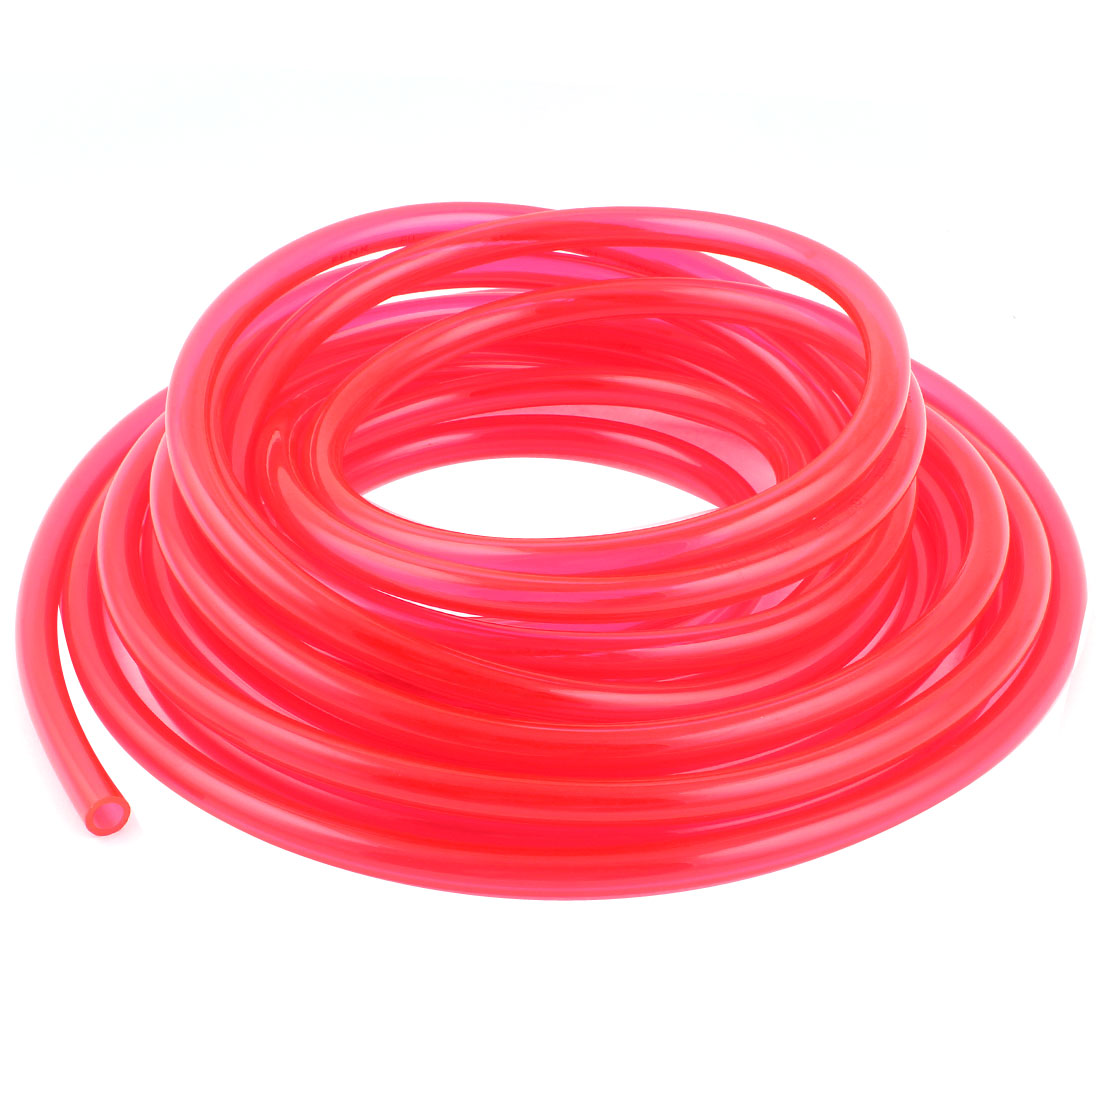 10m 33ft 10mmx6.5mm Pneumatic Polyurethane PU Hose Tube Pipe Clear Red